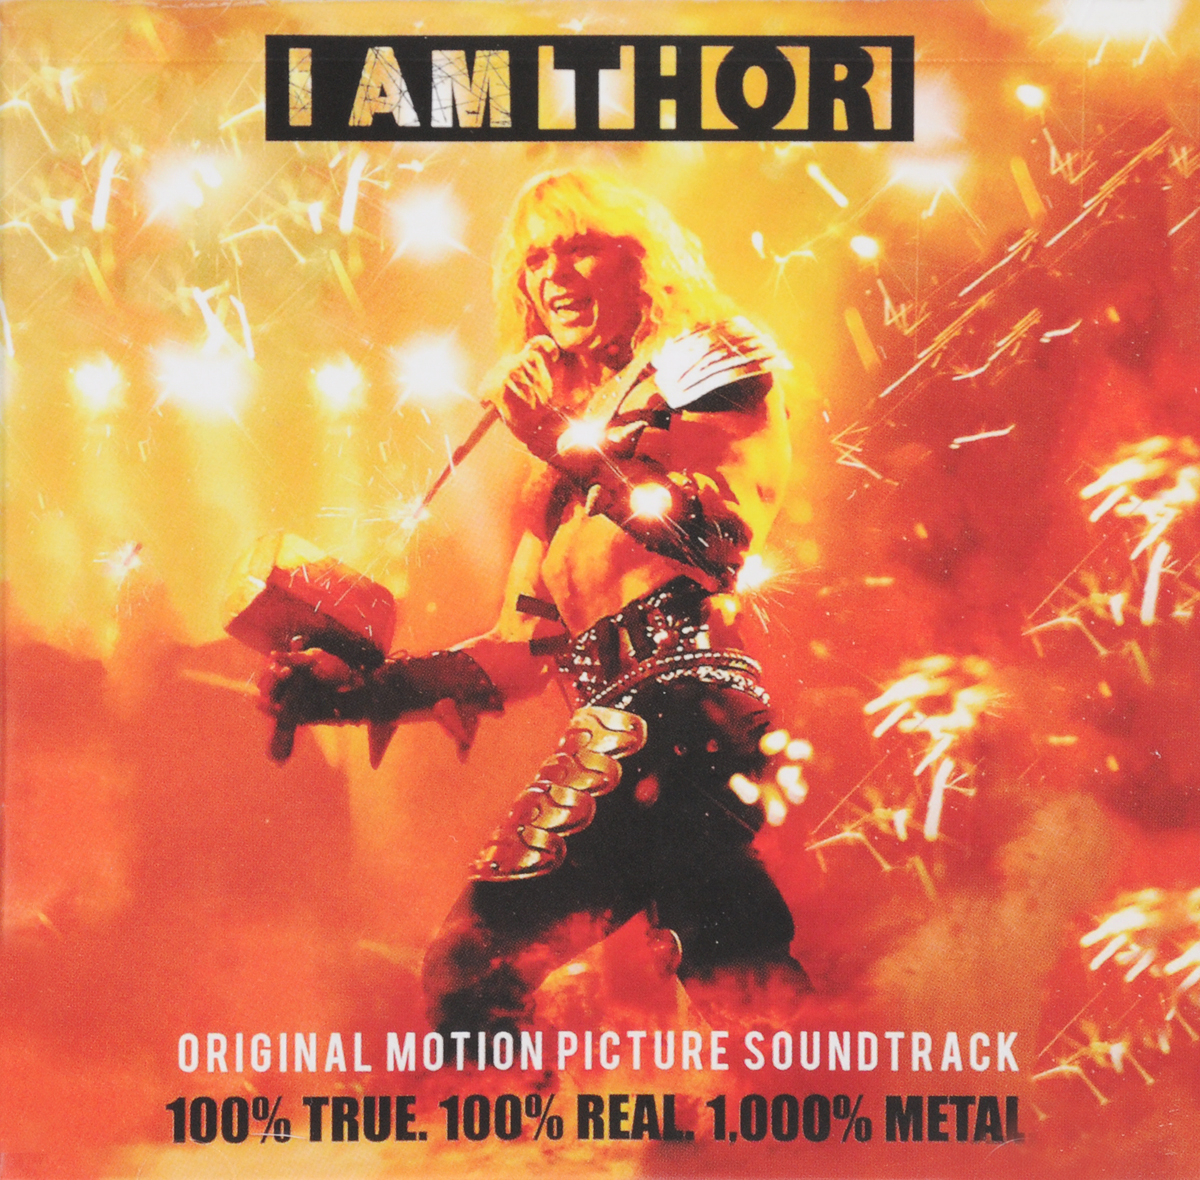 Thor Thor. I Am Thor - Original Motion Picture Soundtrack leonard cohen i m your man motion picture soundtrack